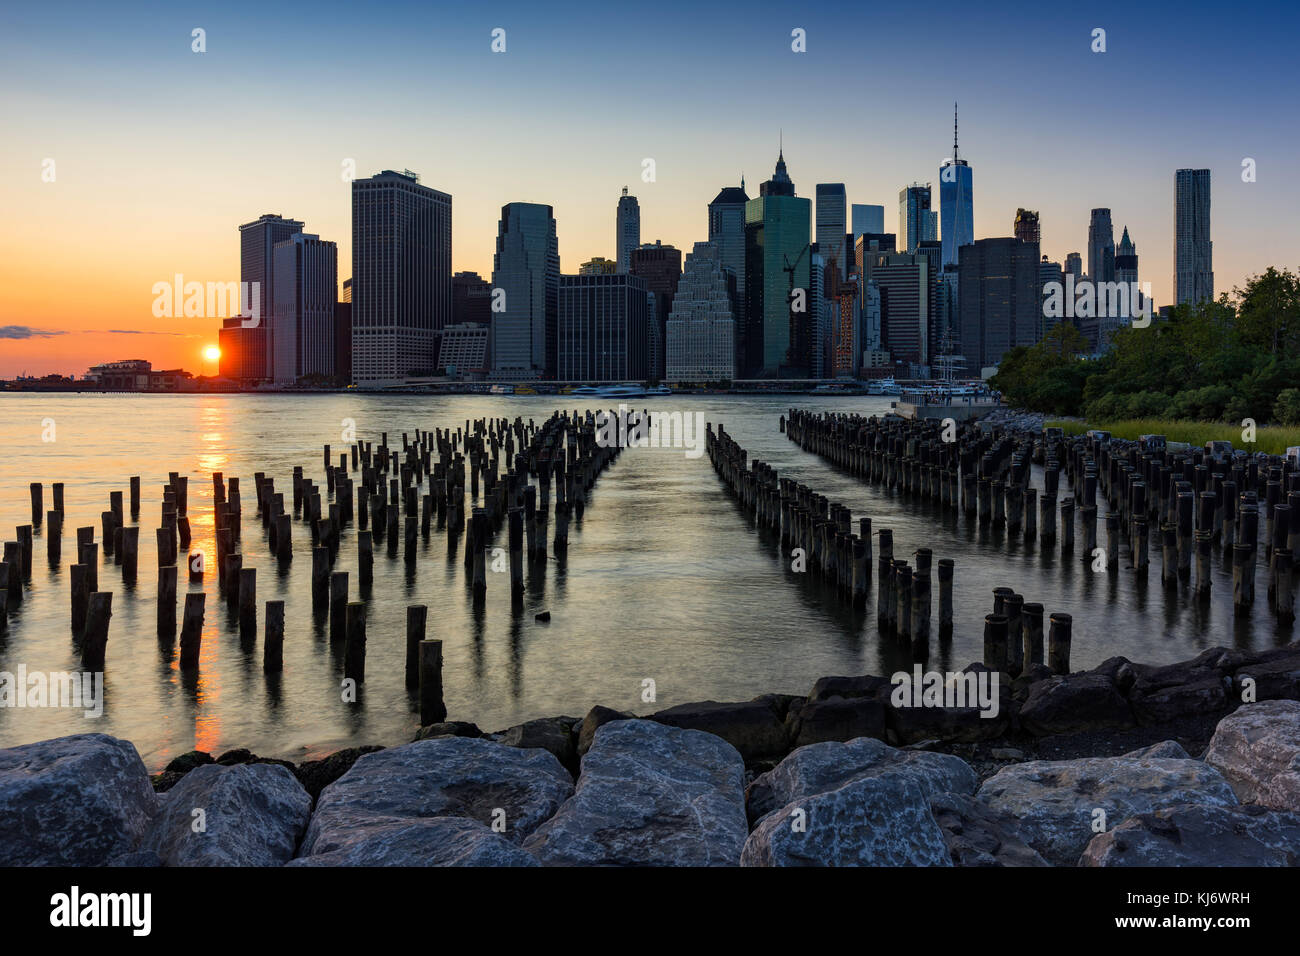 Skyscrapers of Lower Manhattan and wood pilings at Sunset from Brooklyn Bridge Park. Manhattan, New York City - Stock Image